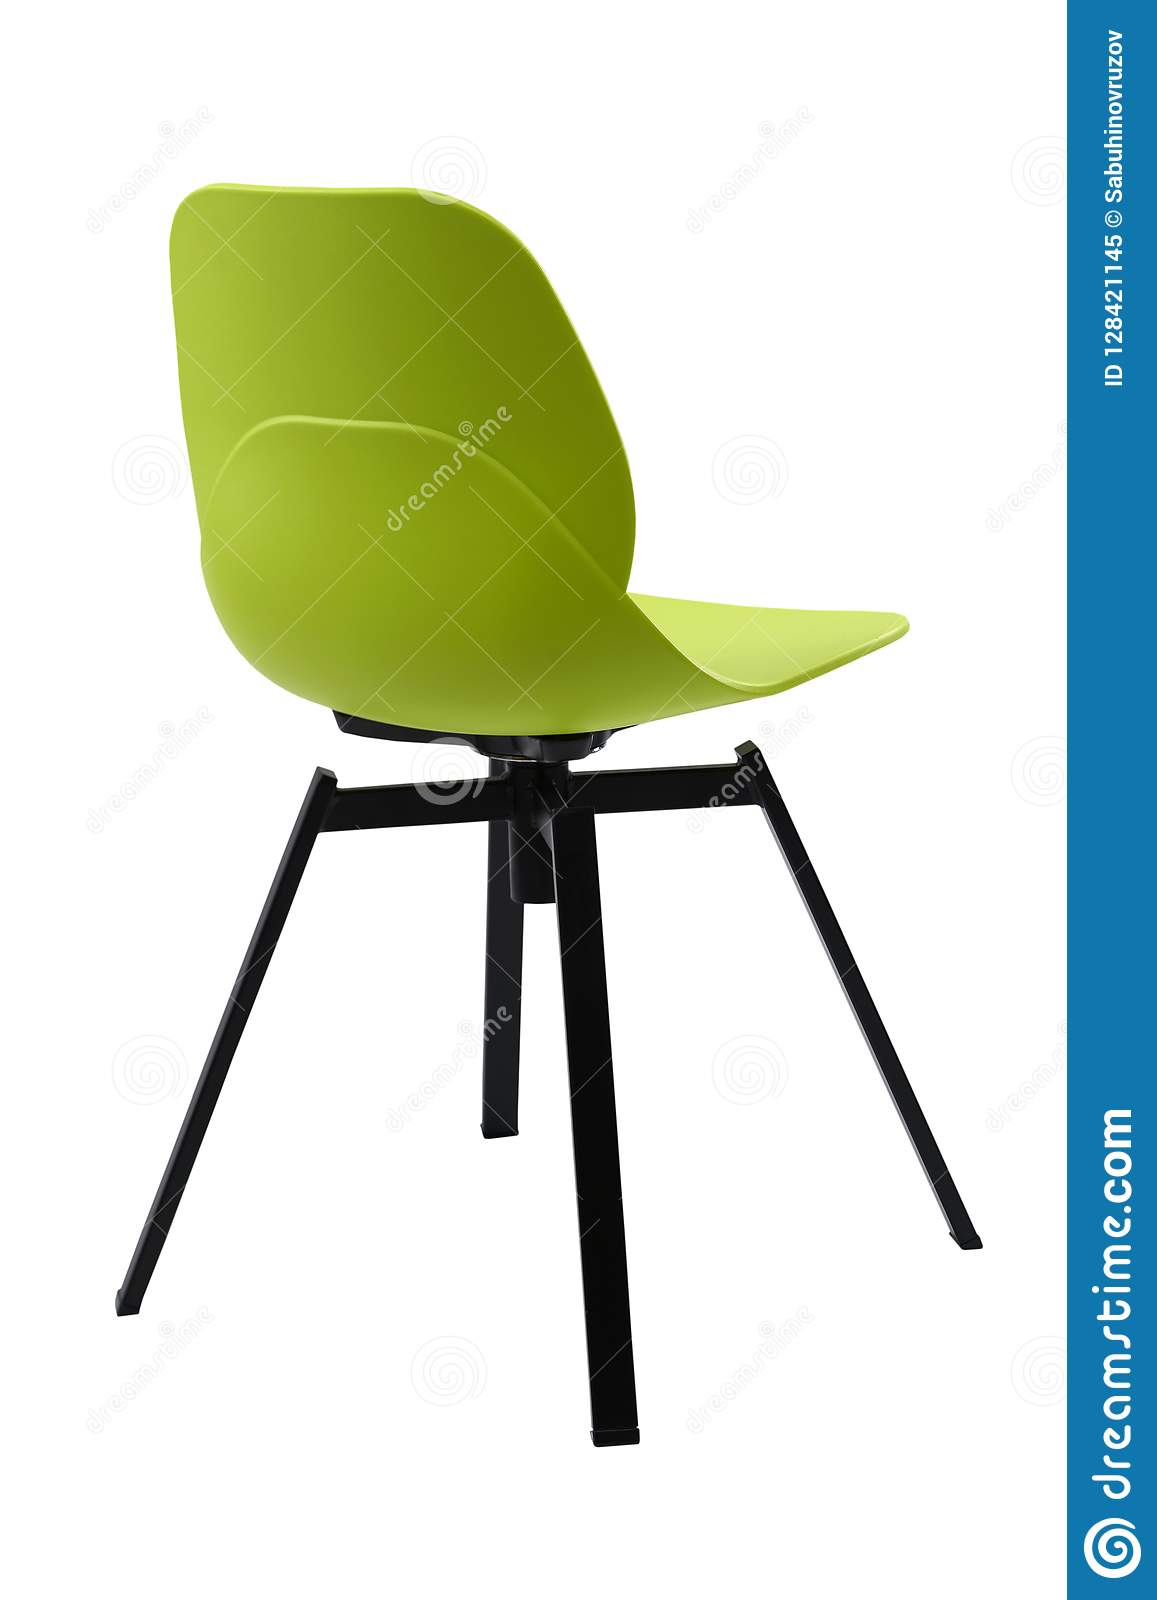 Standart Green Office Plastic Chair Isolated On White. Simple